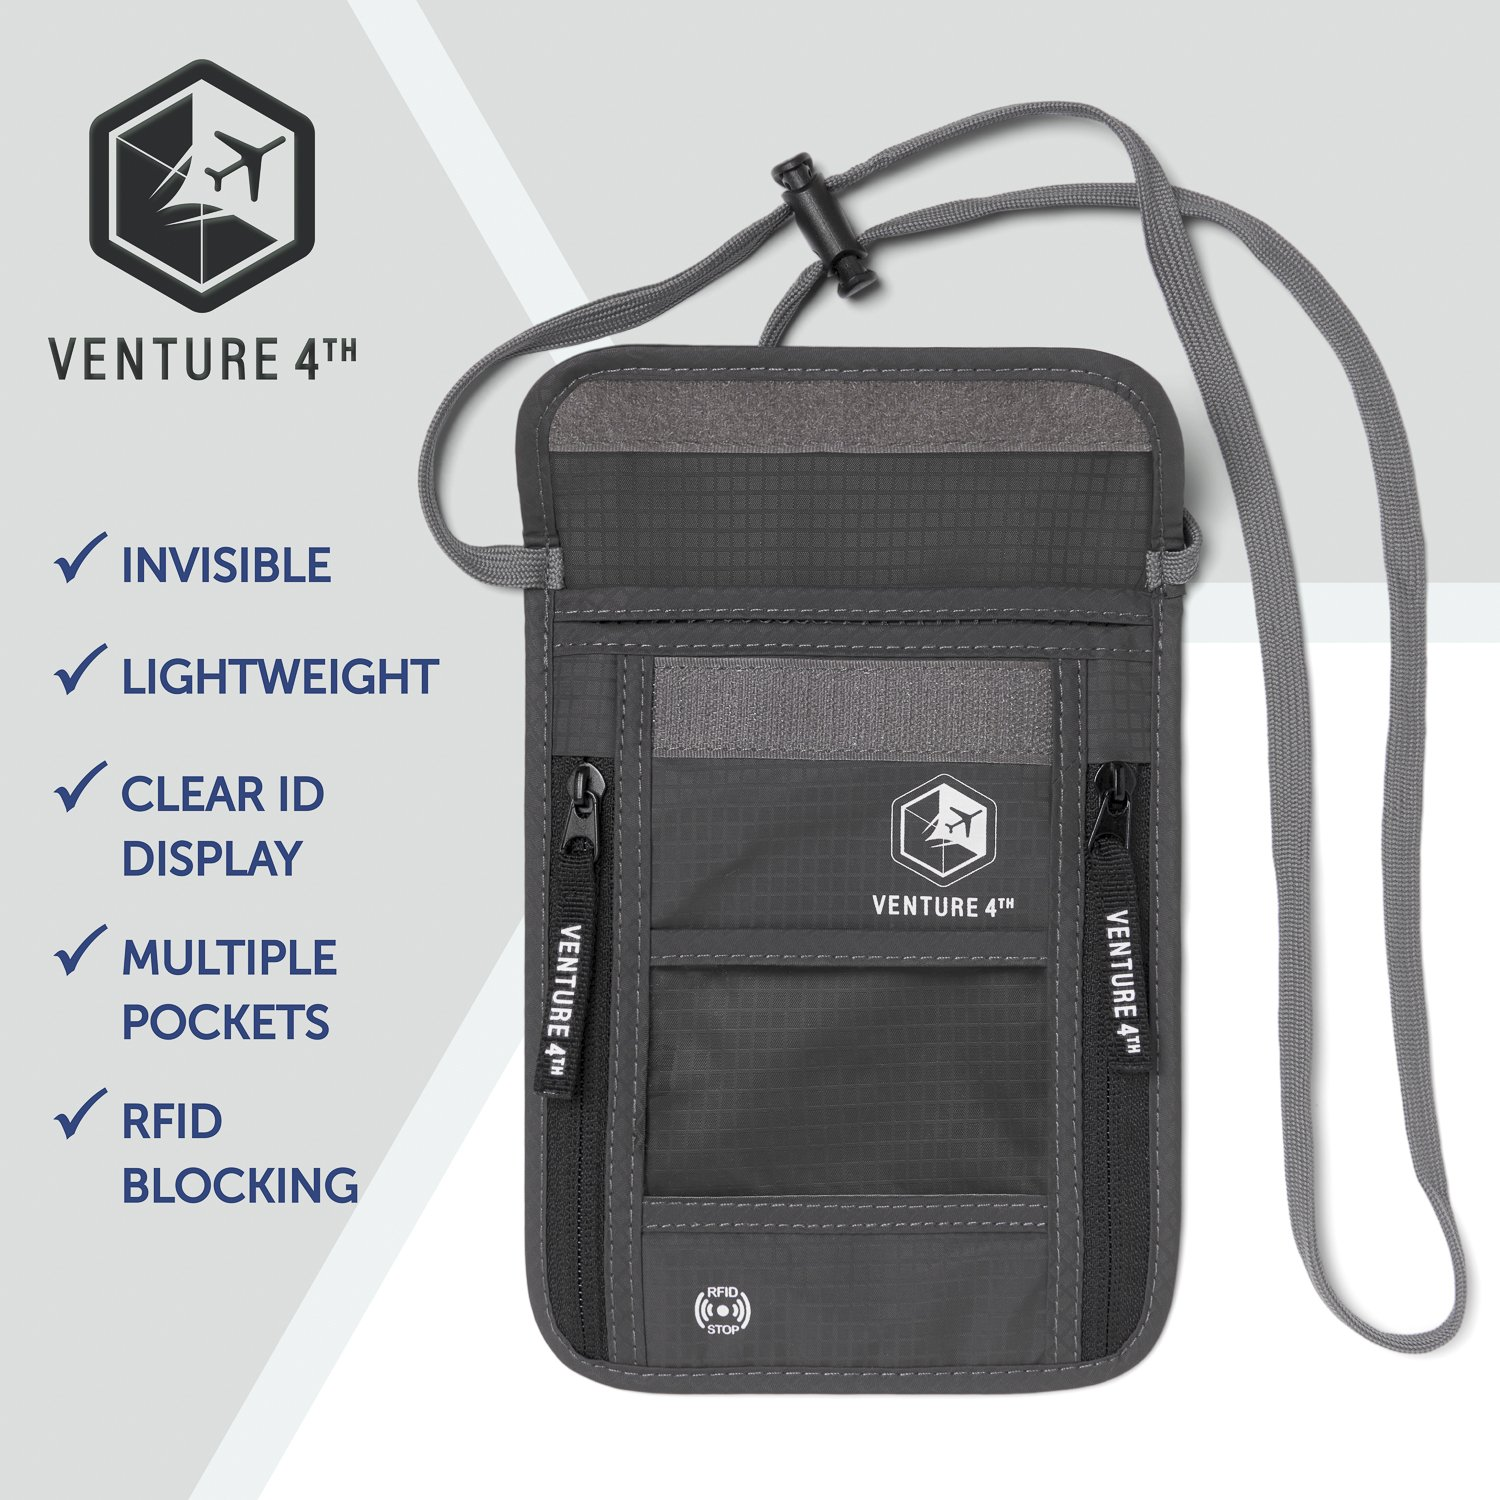 Venture 4th Travel Neck Pouch With RFID Blocking - Travel Wallet Passport Holder (Grey) by VENTURE 4TH (Image #7)